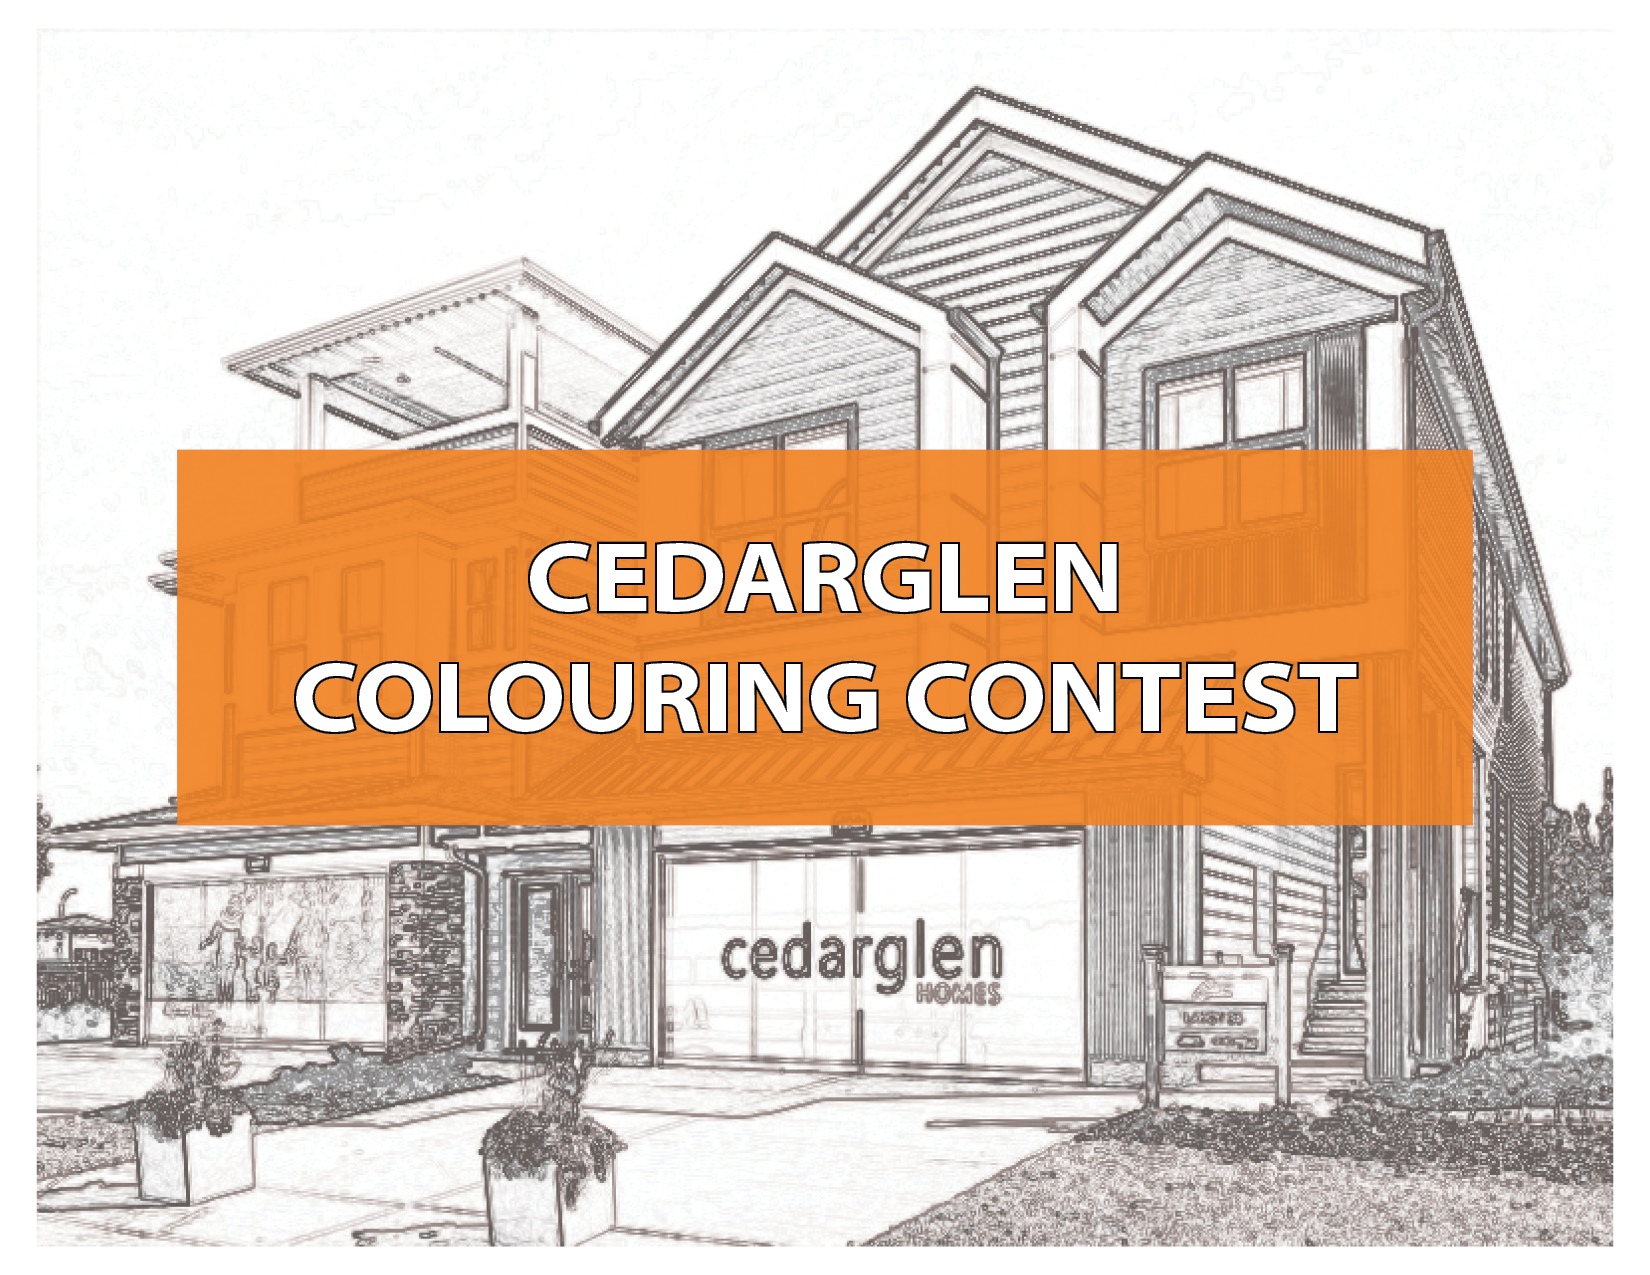 Cedarglen Colouring Contest